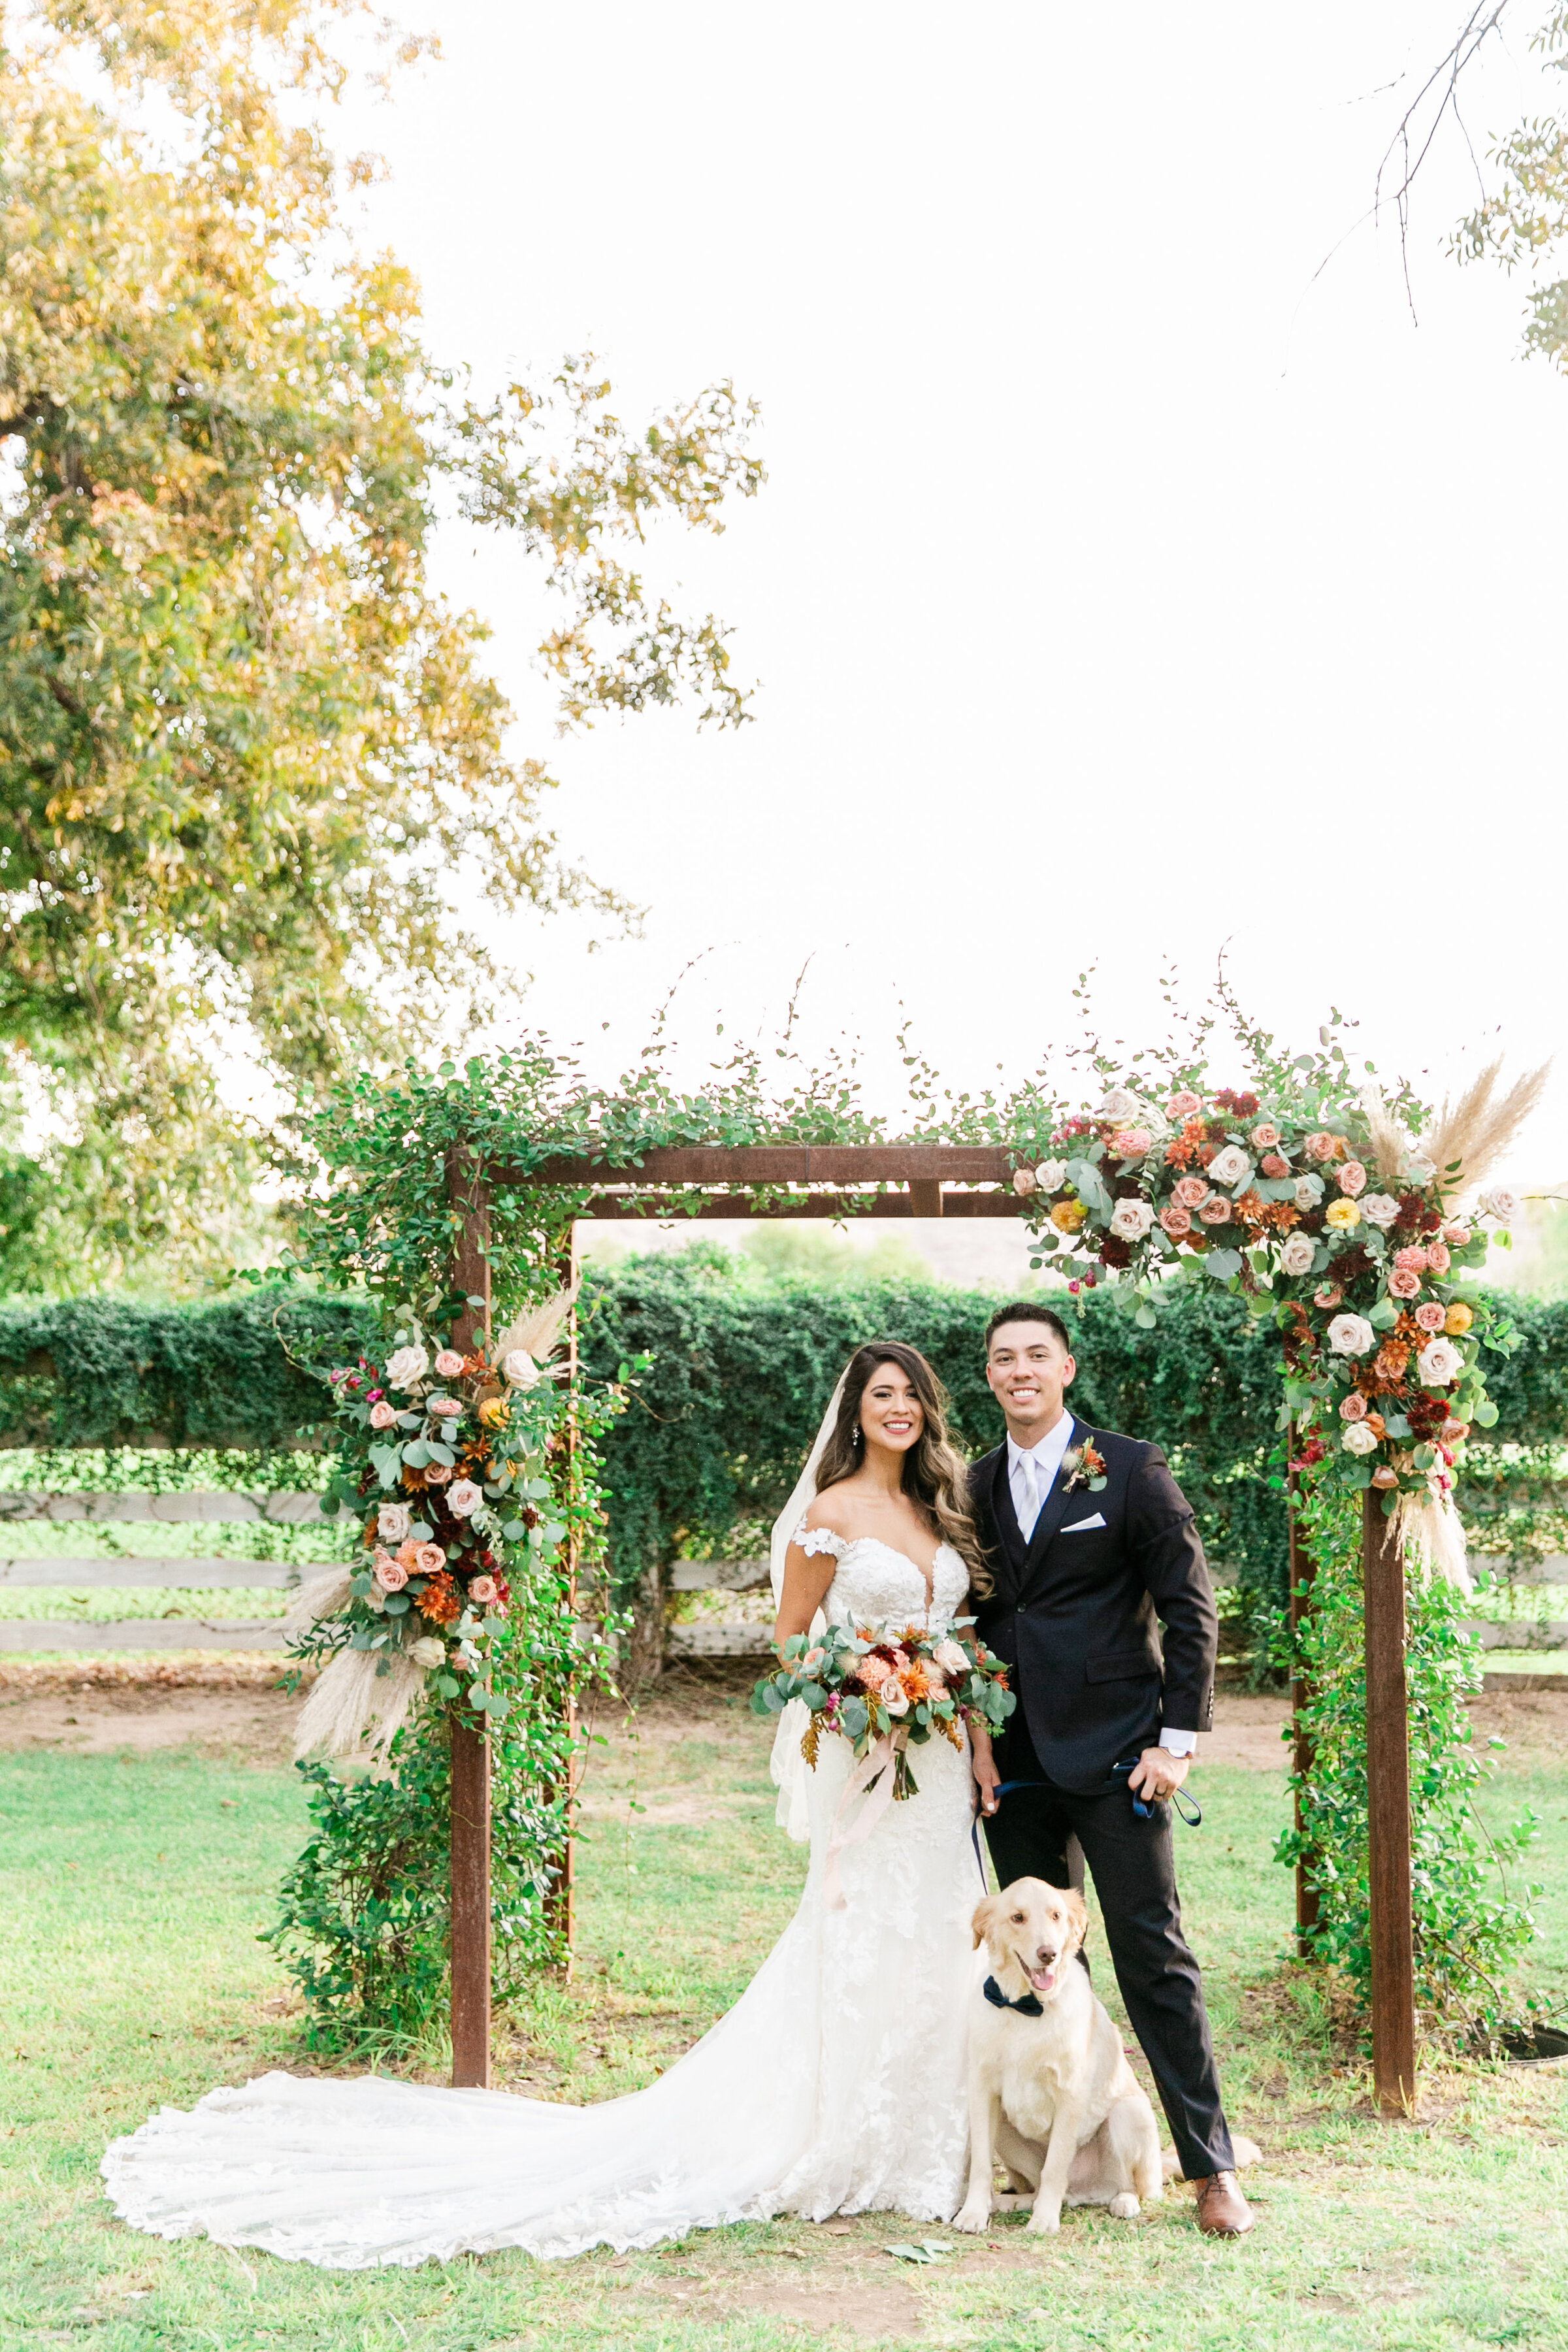 Karlie Colleen Photography - Phoenix Arizona - Farm At South Mountain Venue - Vanessa & Robert-693